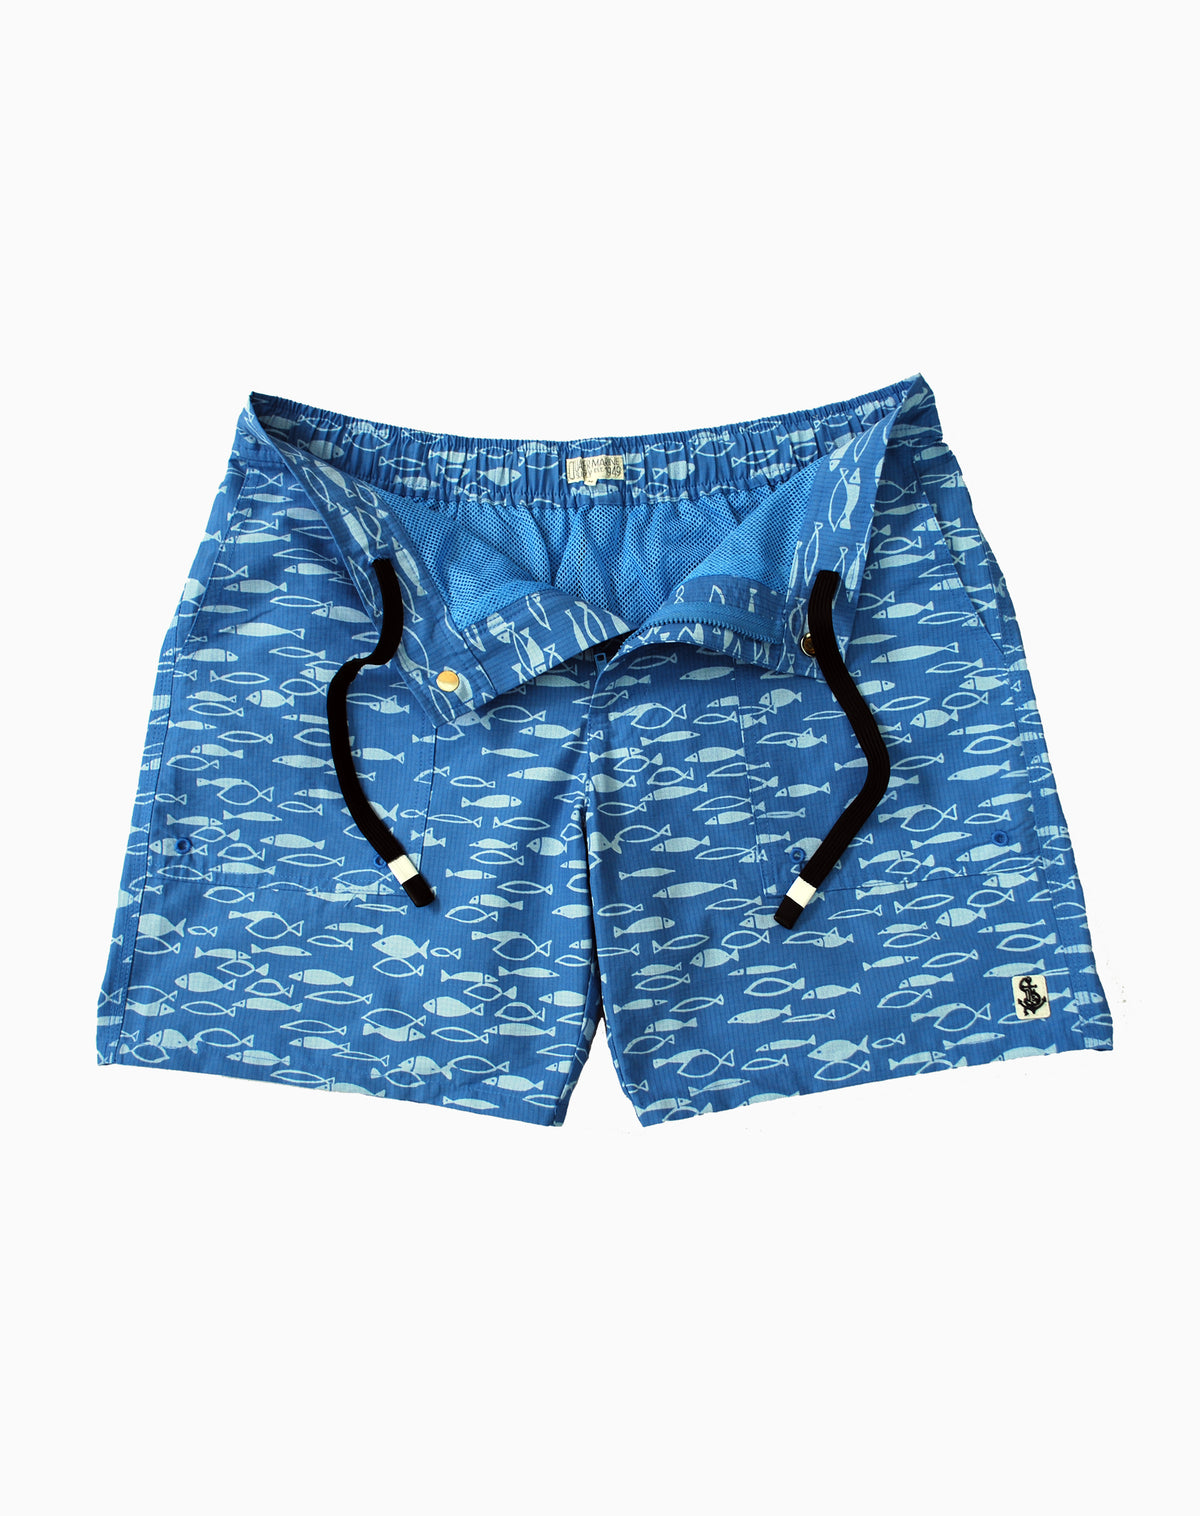 Fish Print Utility Trunk in Mid-Blue